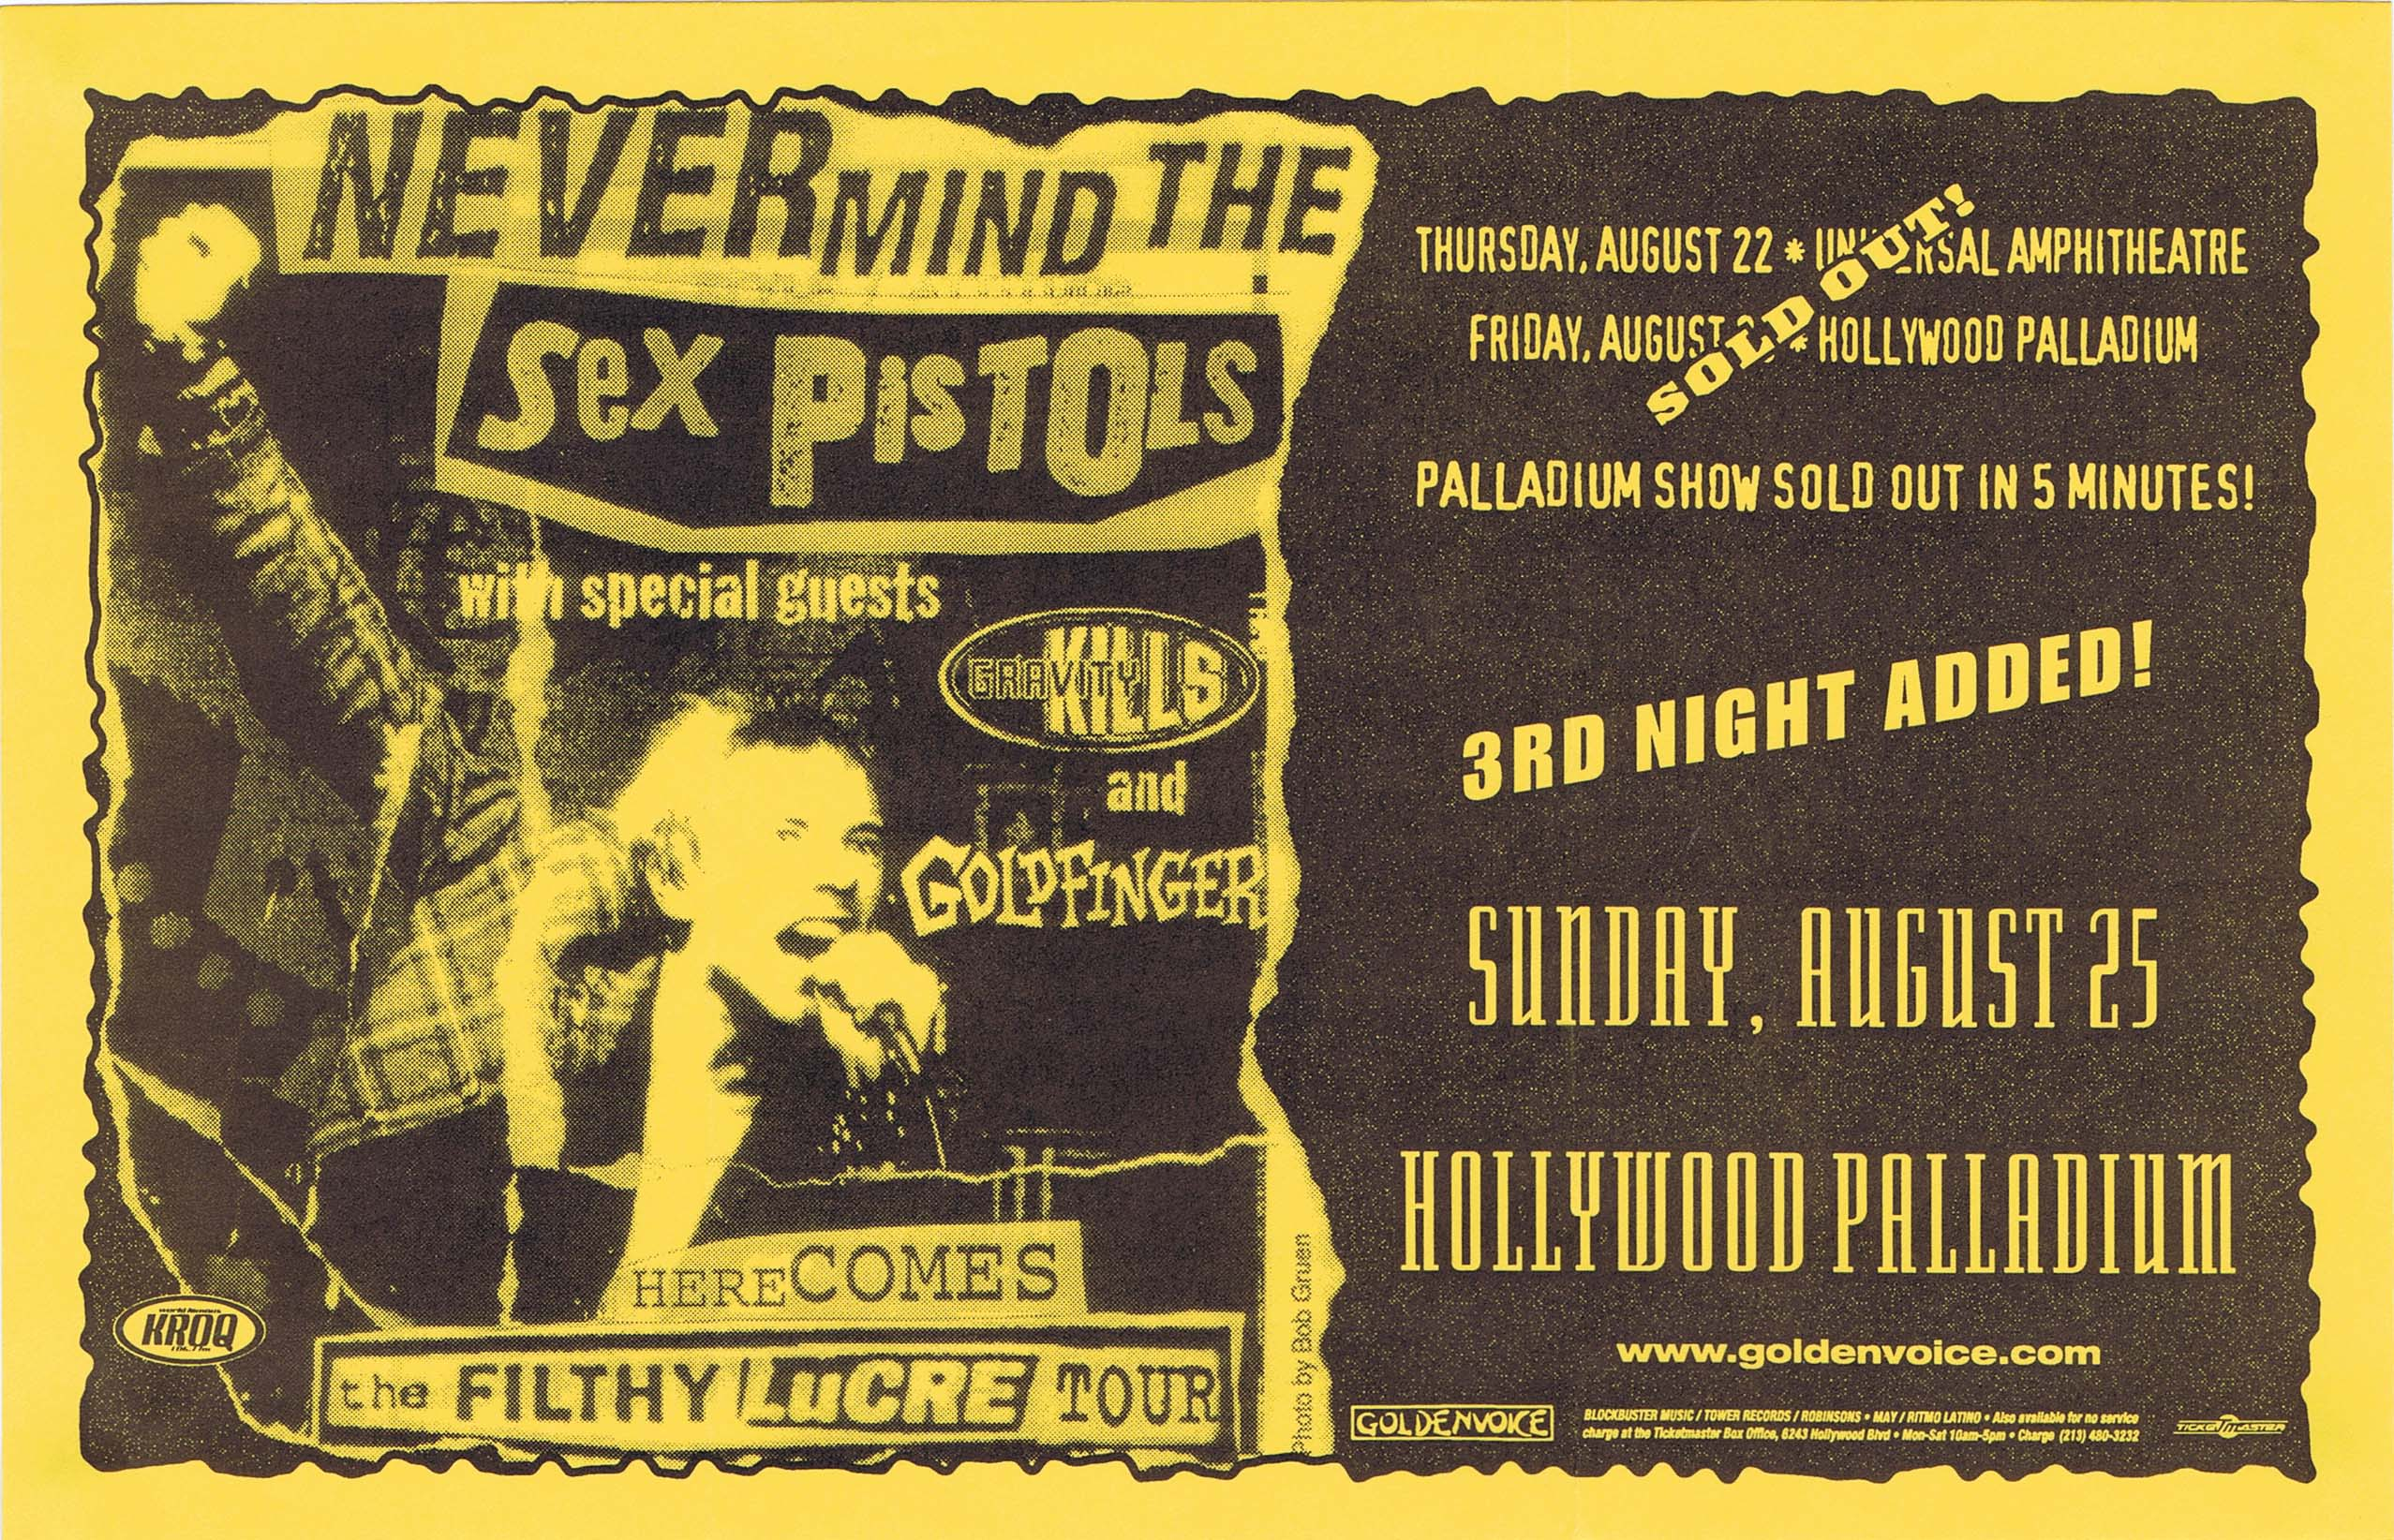 Hollywood Palladium, Los Angeles, California, USA, August 25th 1996 - Flyer